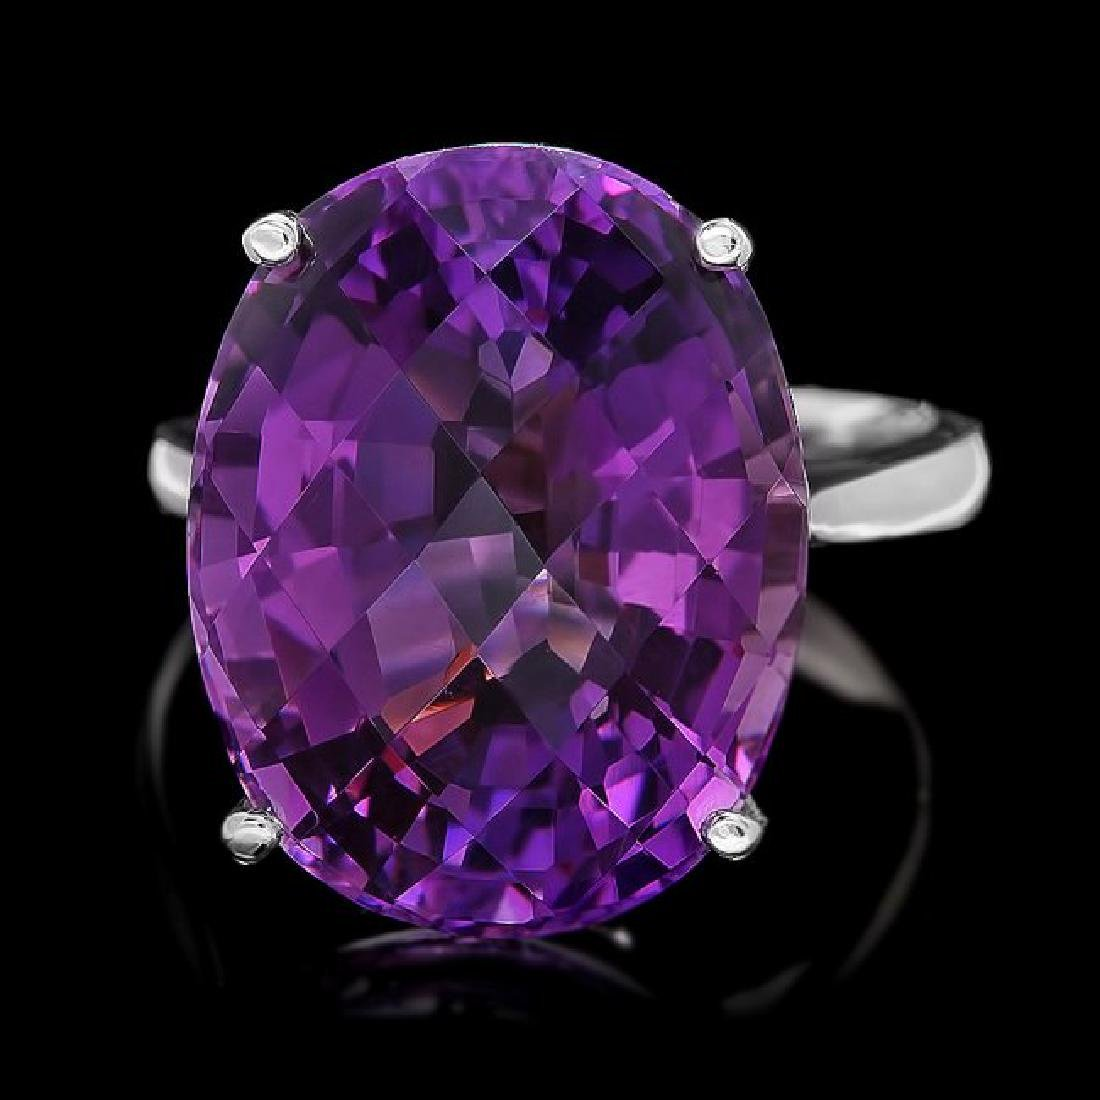 14k White Gold 15.00ct Amethyst Ring